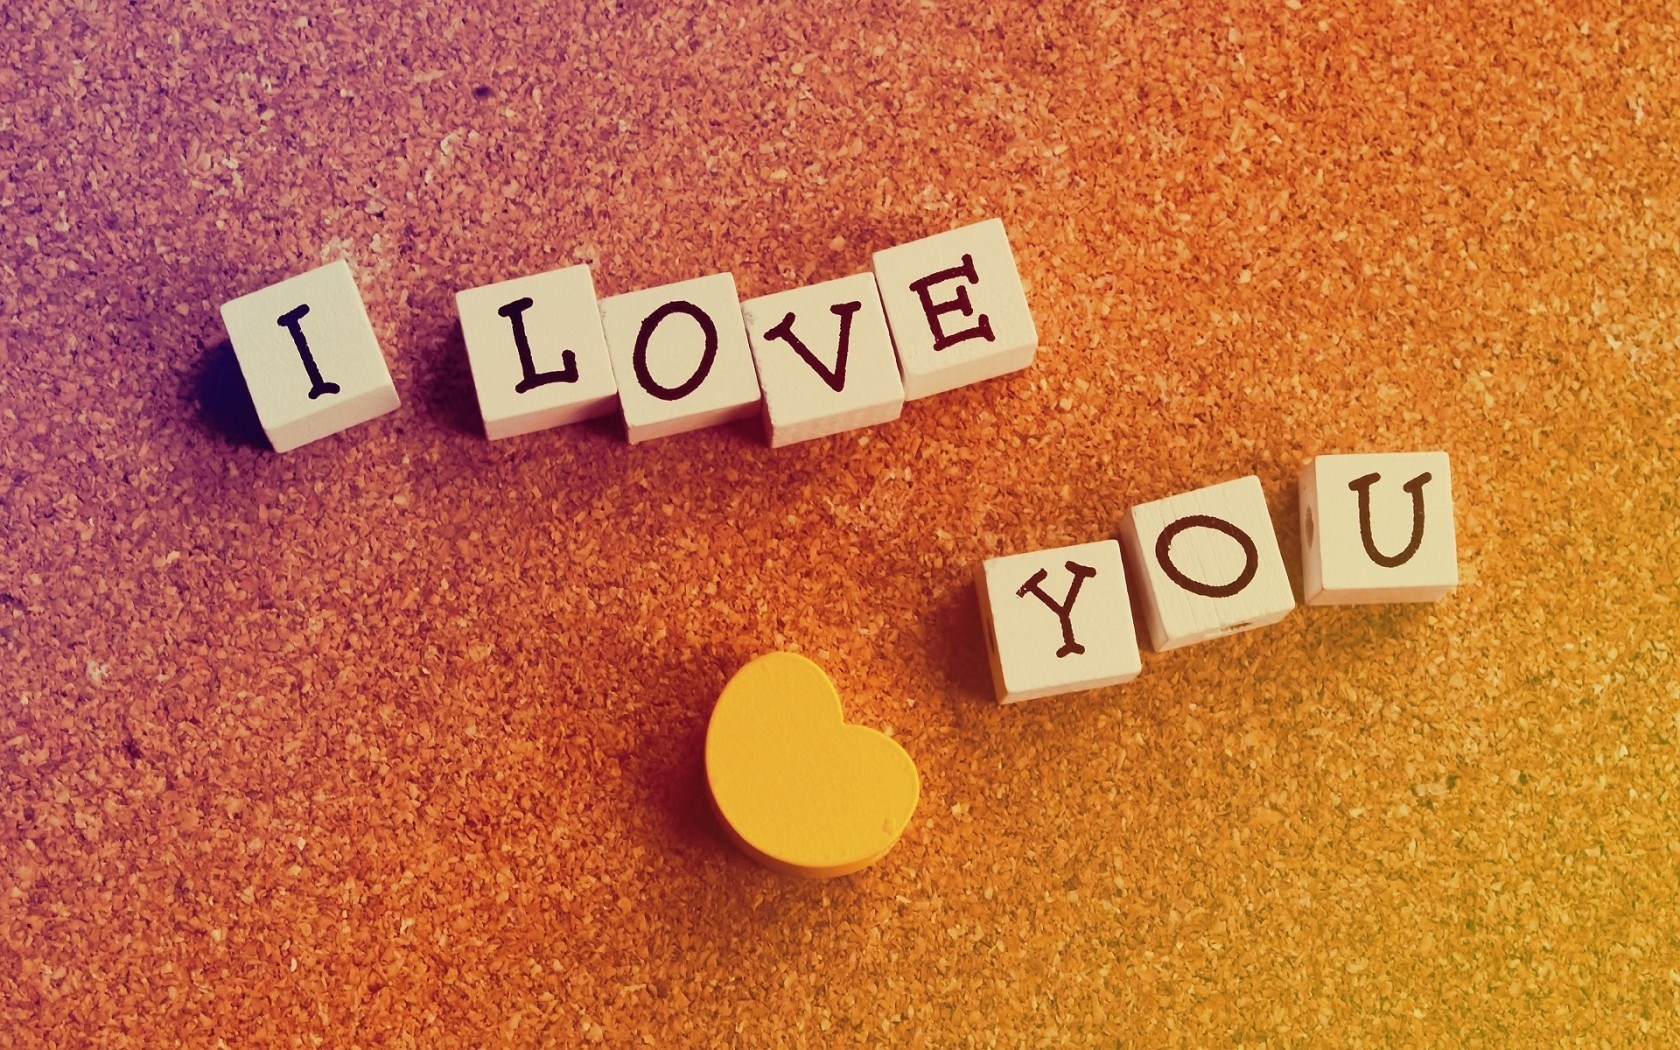 I Love You Jyoti Wallpaper Hd : Download I Love You Jyoti Wallpaper Gallery